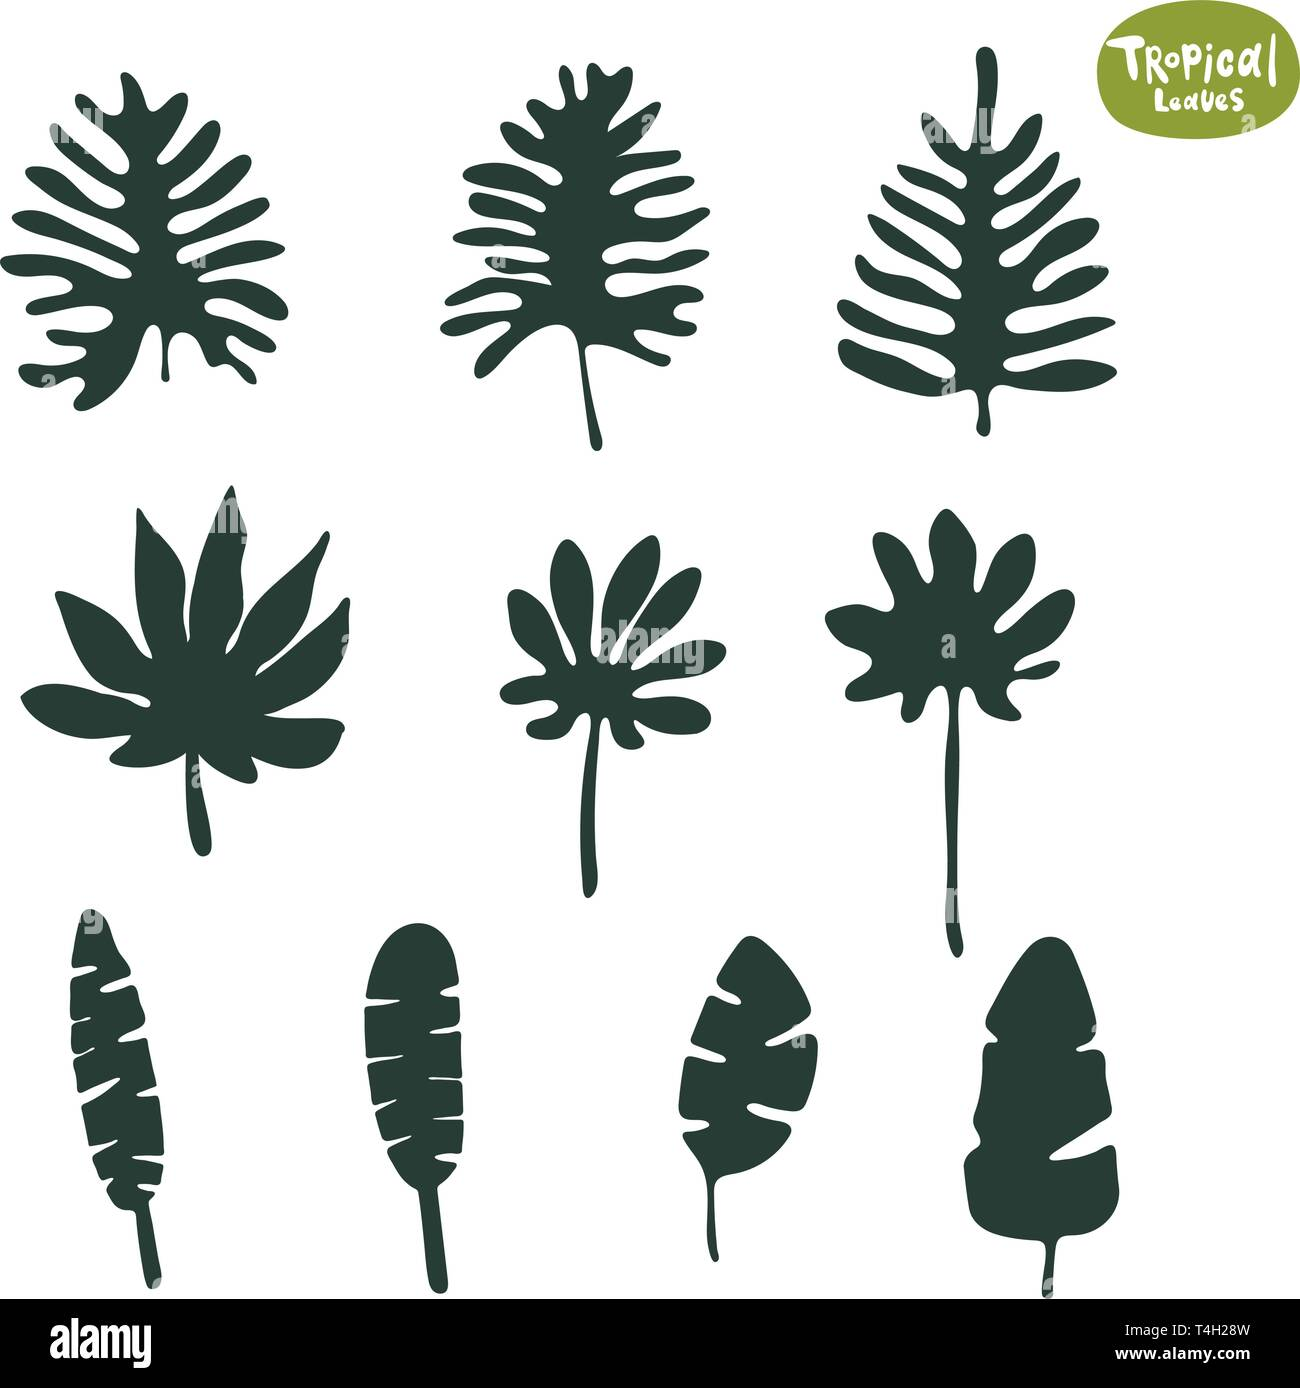 Tropical Doodle Leaves Collection Set Of Vector Isolated Silhouettes On White Background Stock Vector Image Art Alamy This set of watercolor tropical leaf illustrations is perfect for creating summer wall art, wedding invitations, birthday cards and so much more! alamy